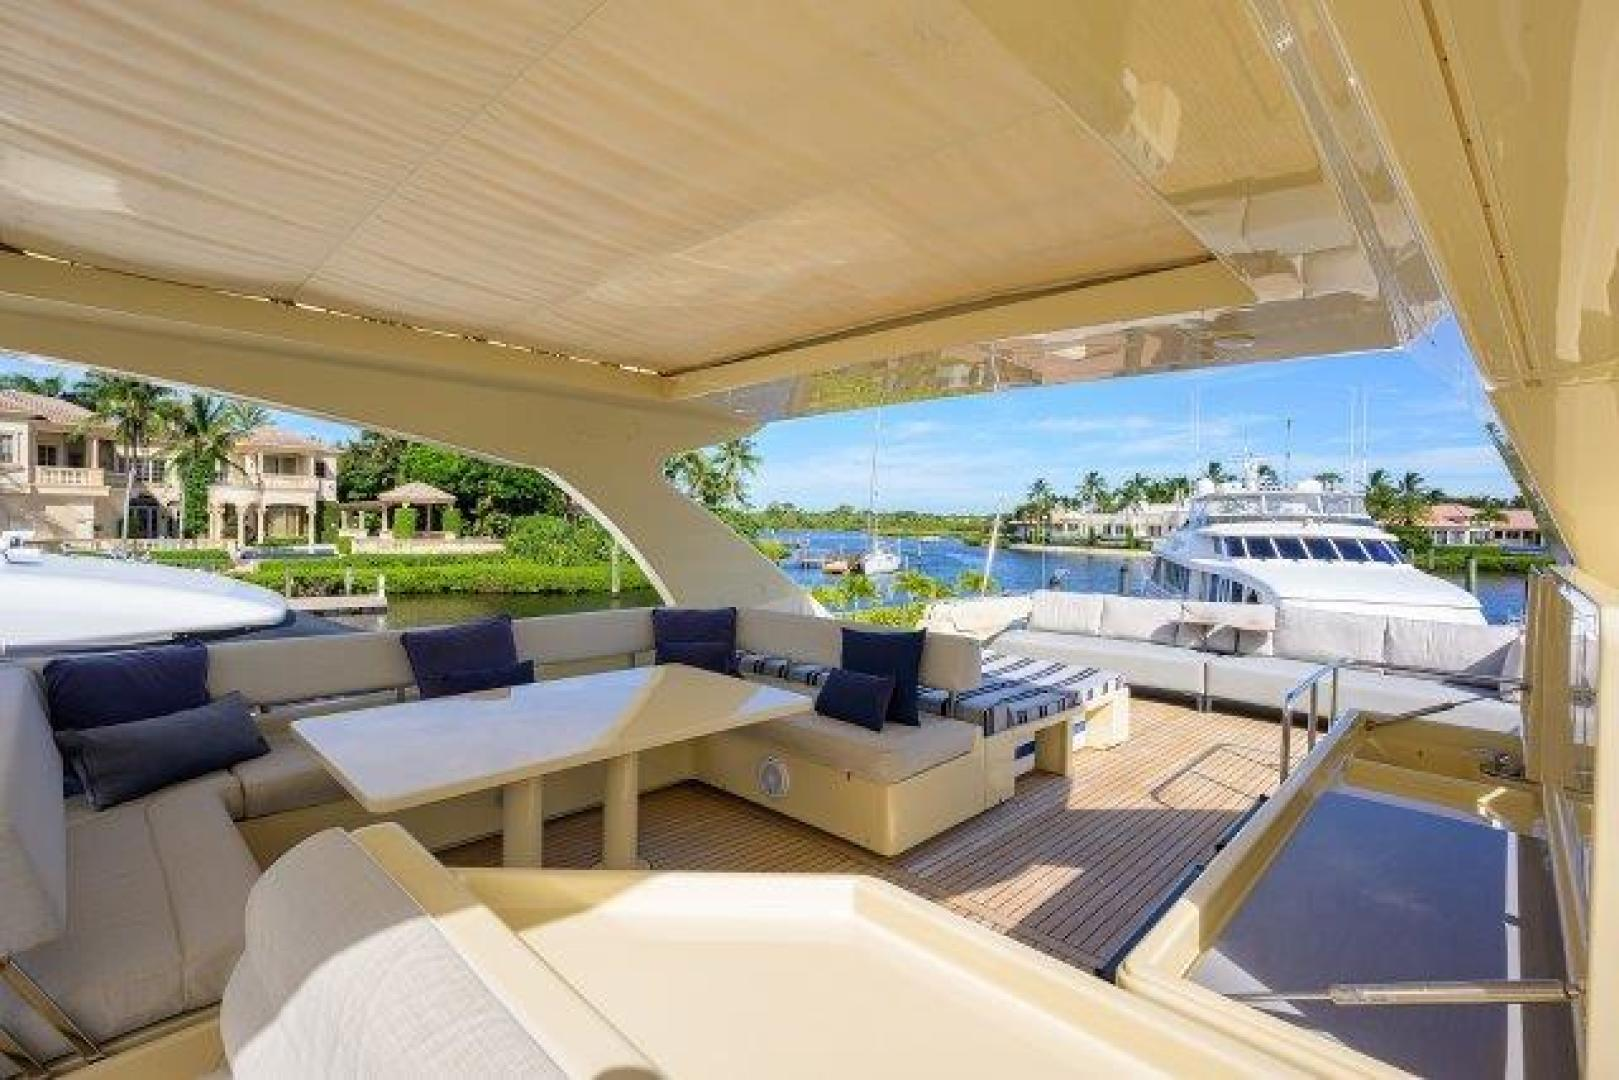 Ferretti Yachts-Altura 840 2010-MISS ALLIED Jupiter-Florida-United States-Bridge Deck-1518348 | Thumbnail